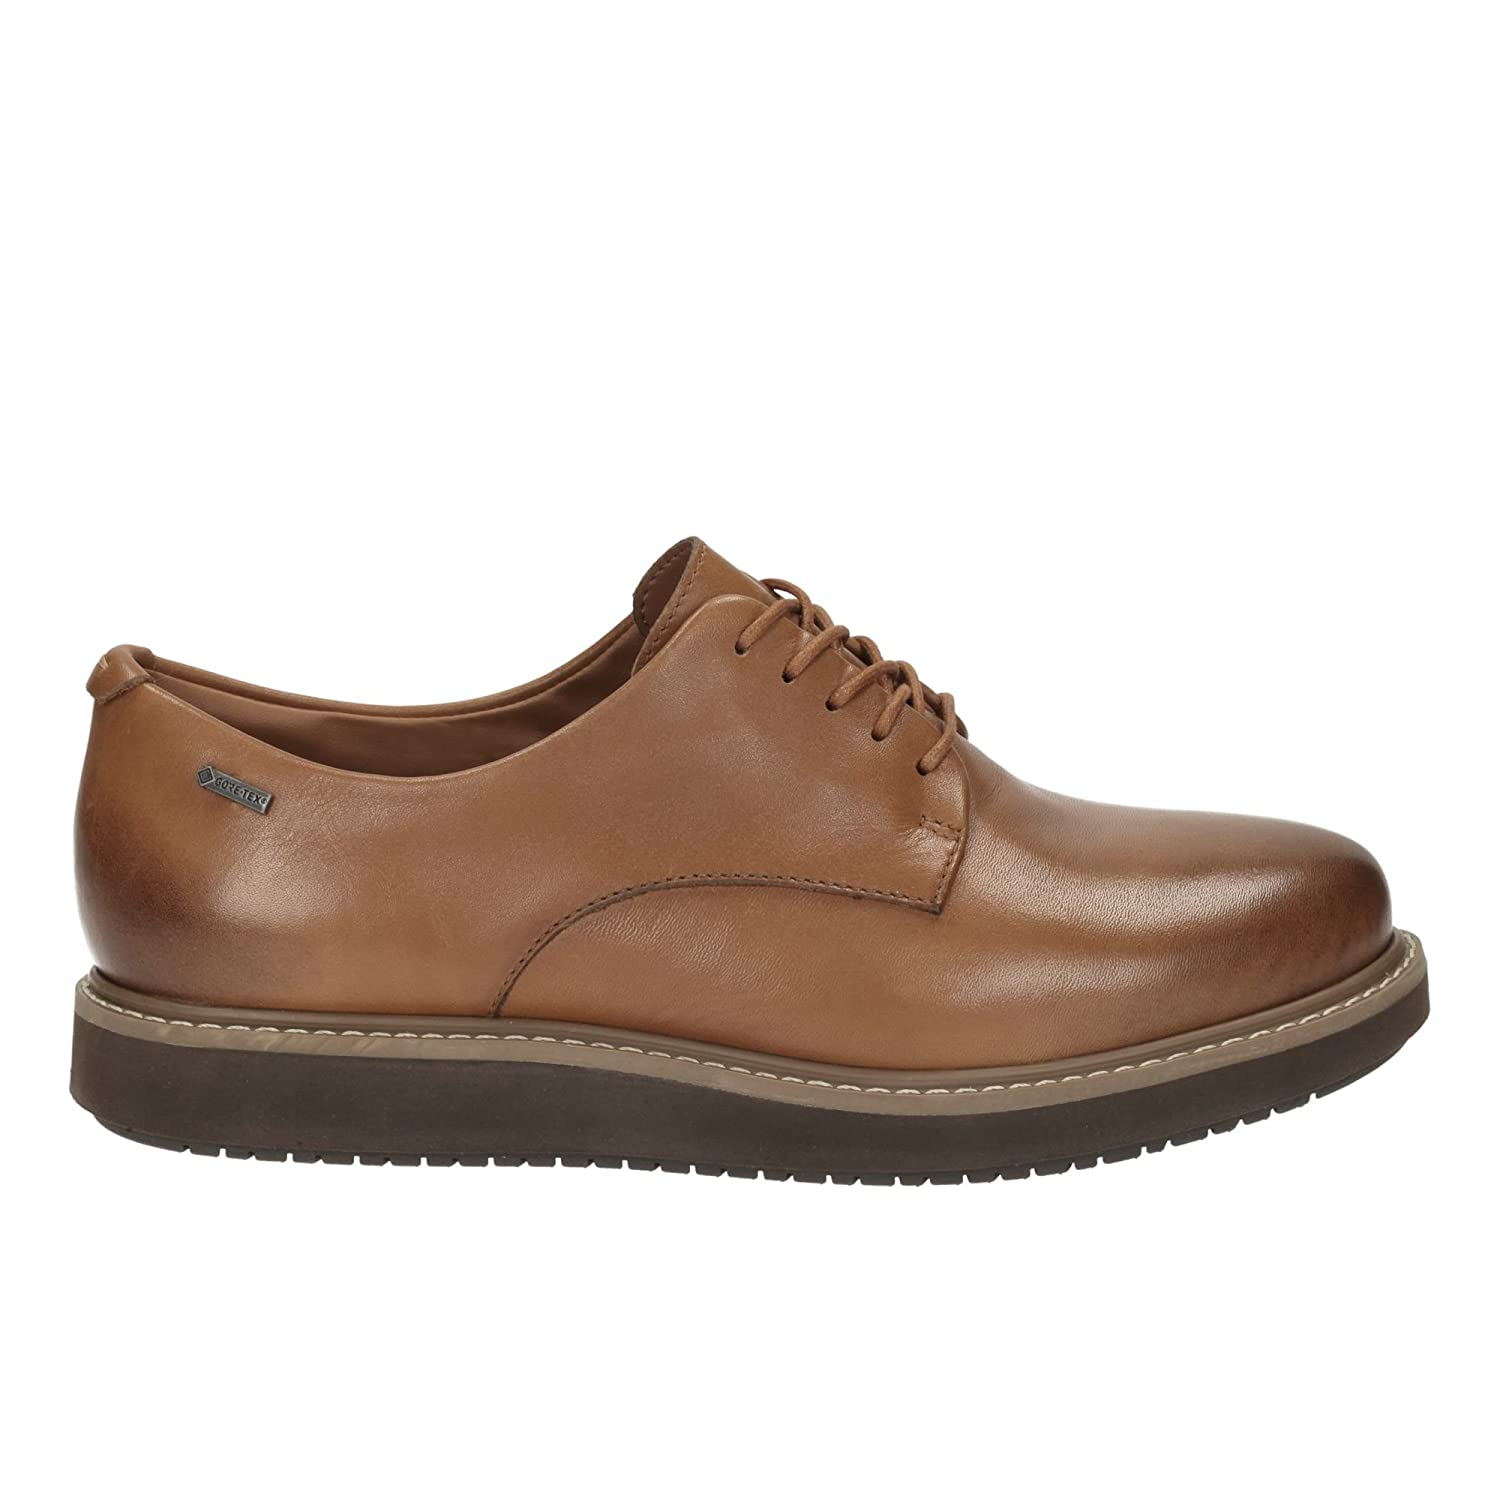 d2723c983e1 Clarks Women s GlickDarby GTX Trainers Brown BROWN  Amazon.co.uk  Shoes    Bags